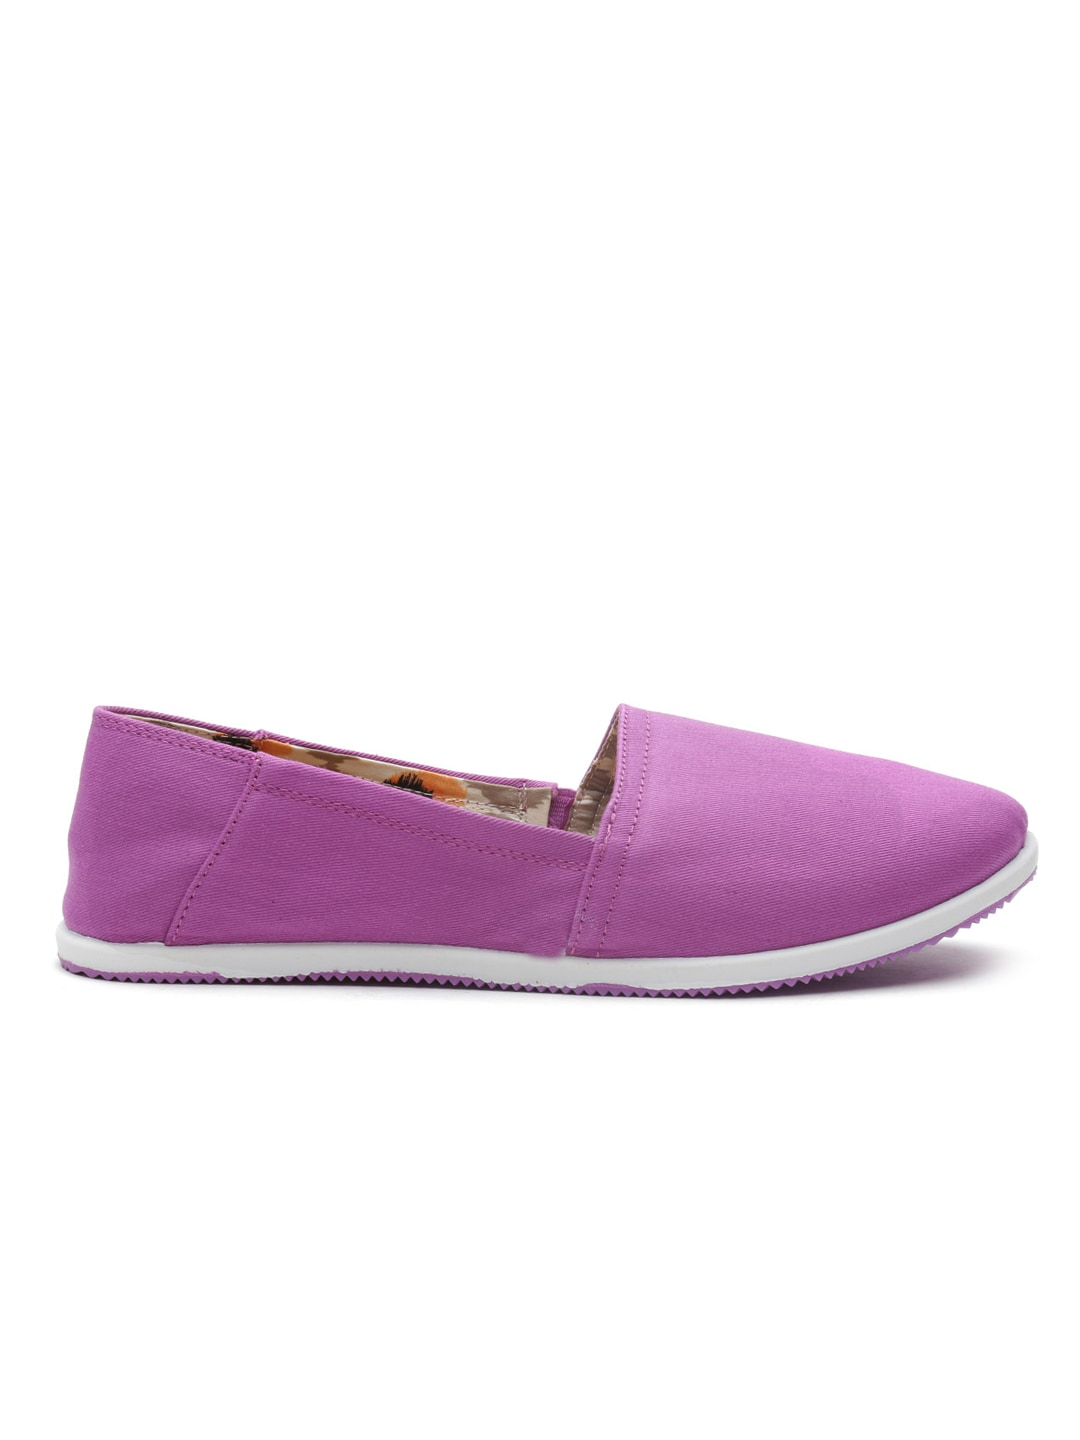 Qupid Women Purple Plimsolls